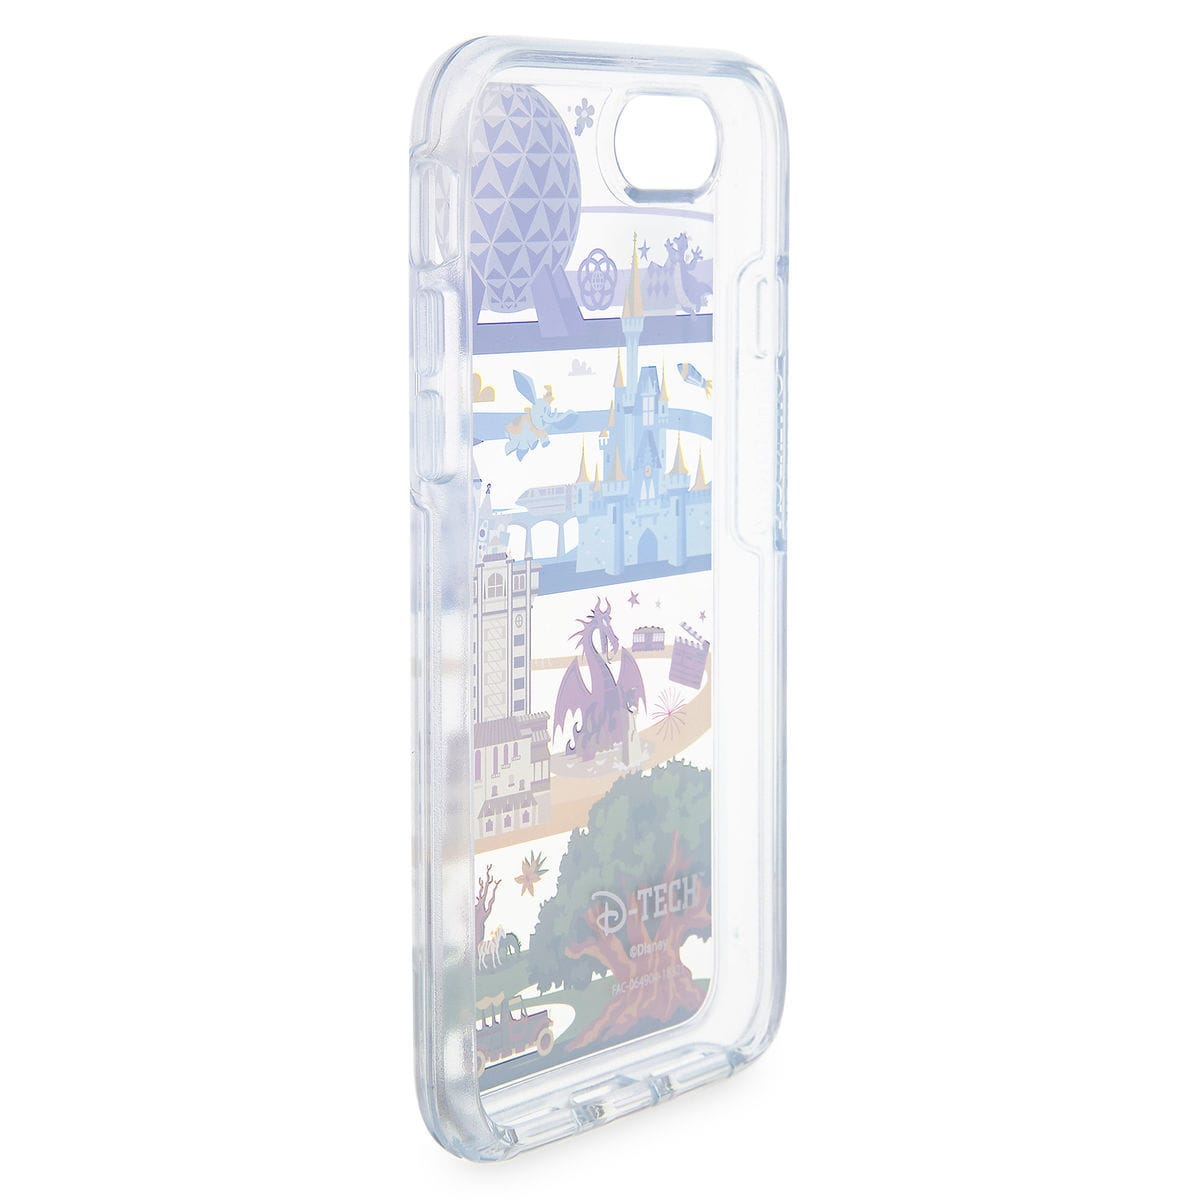 new product 314d3 0dae2 Disney OtterBox iPhone 8/7/6 PLUS Case - Disney World Attractions